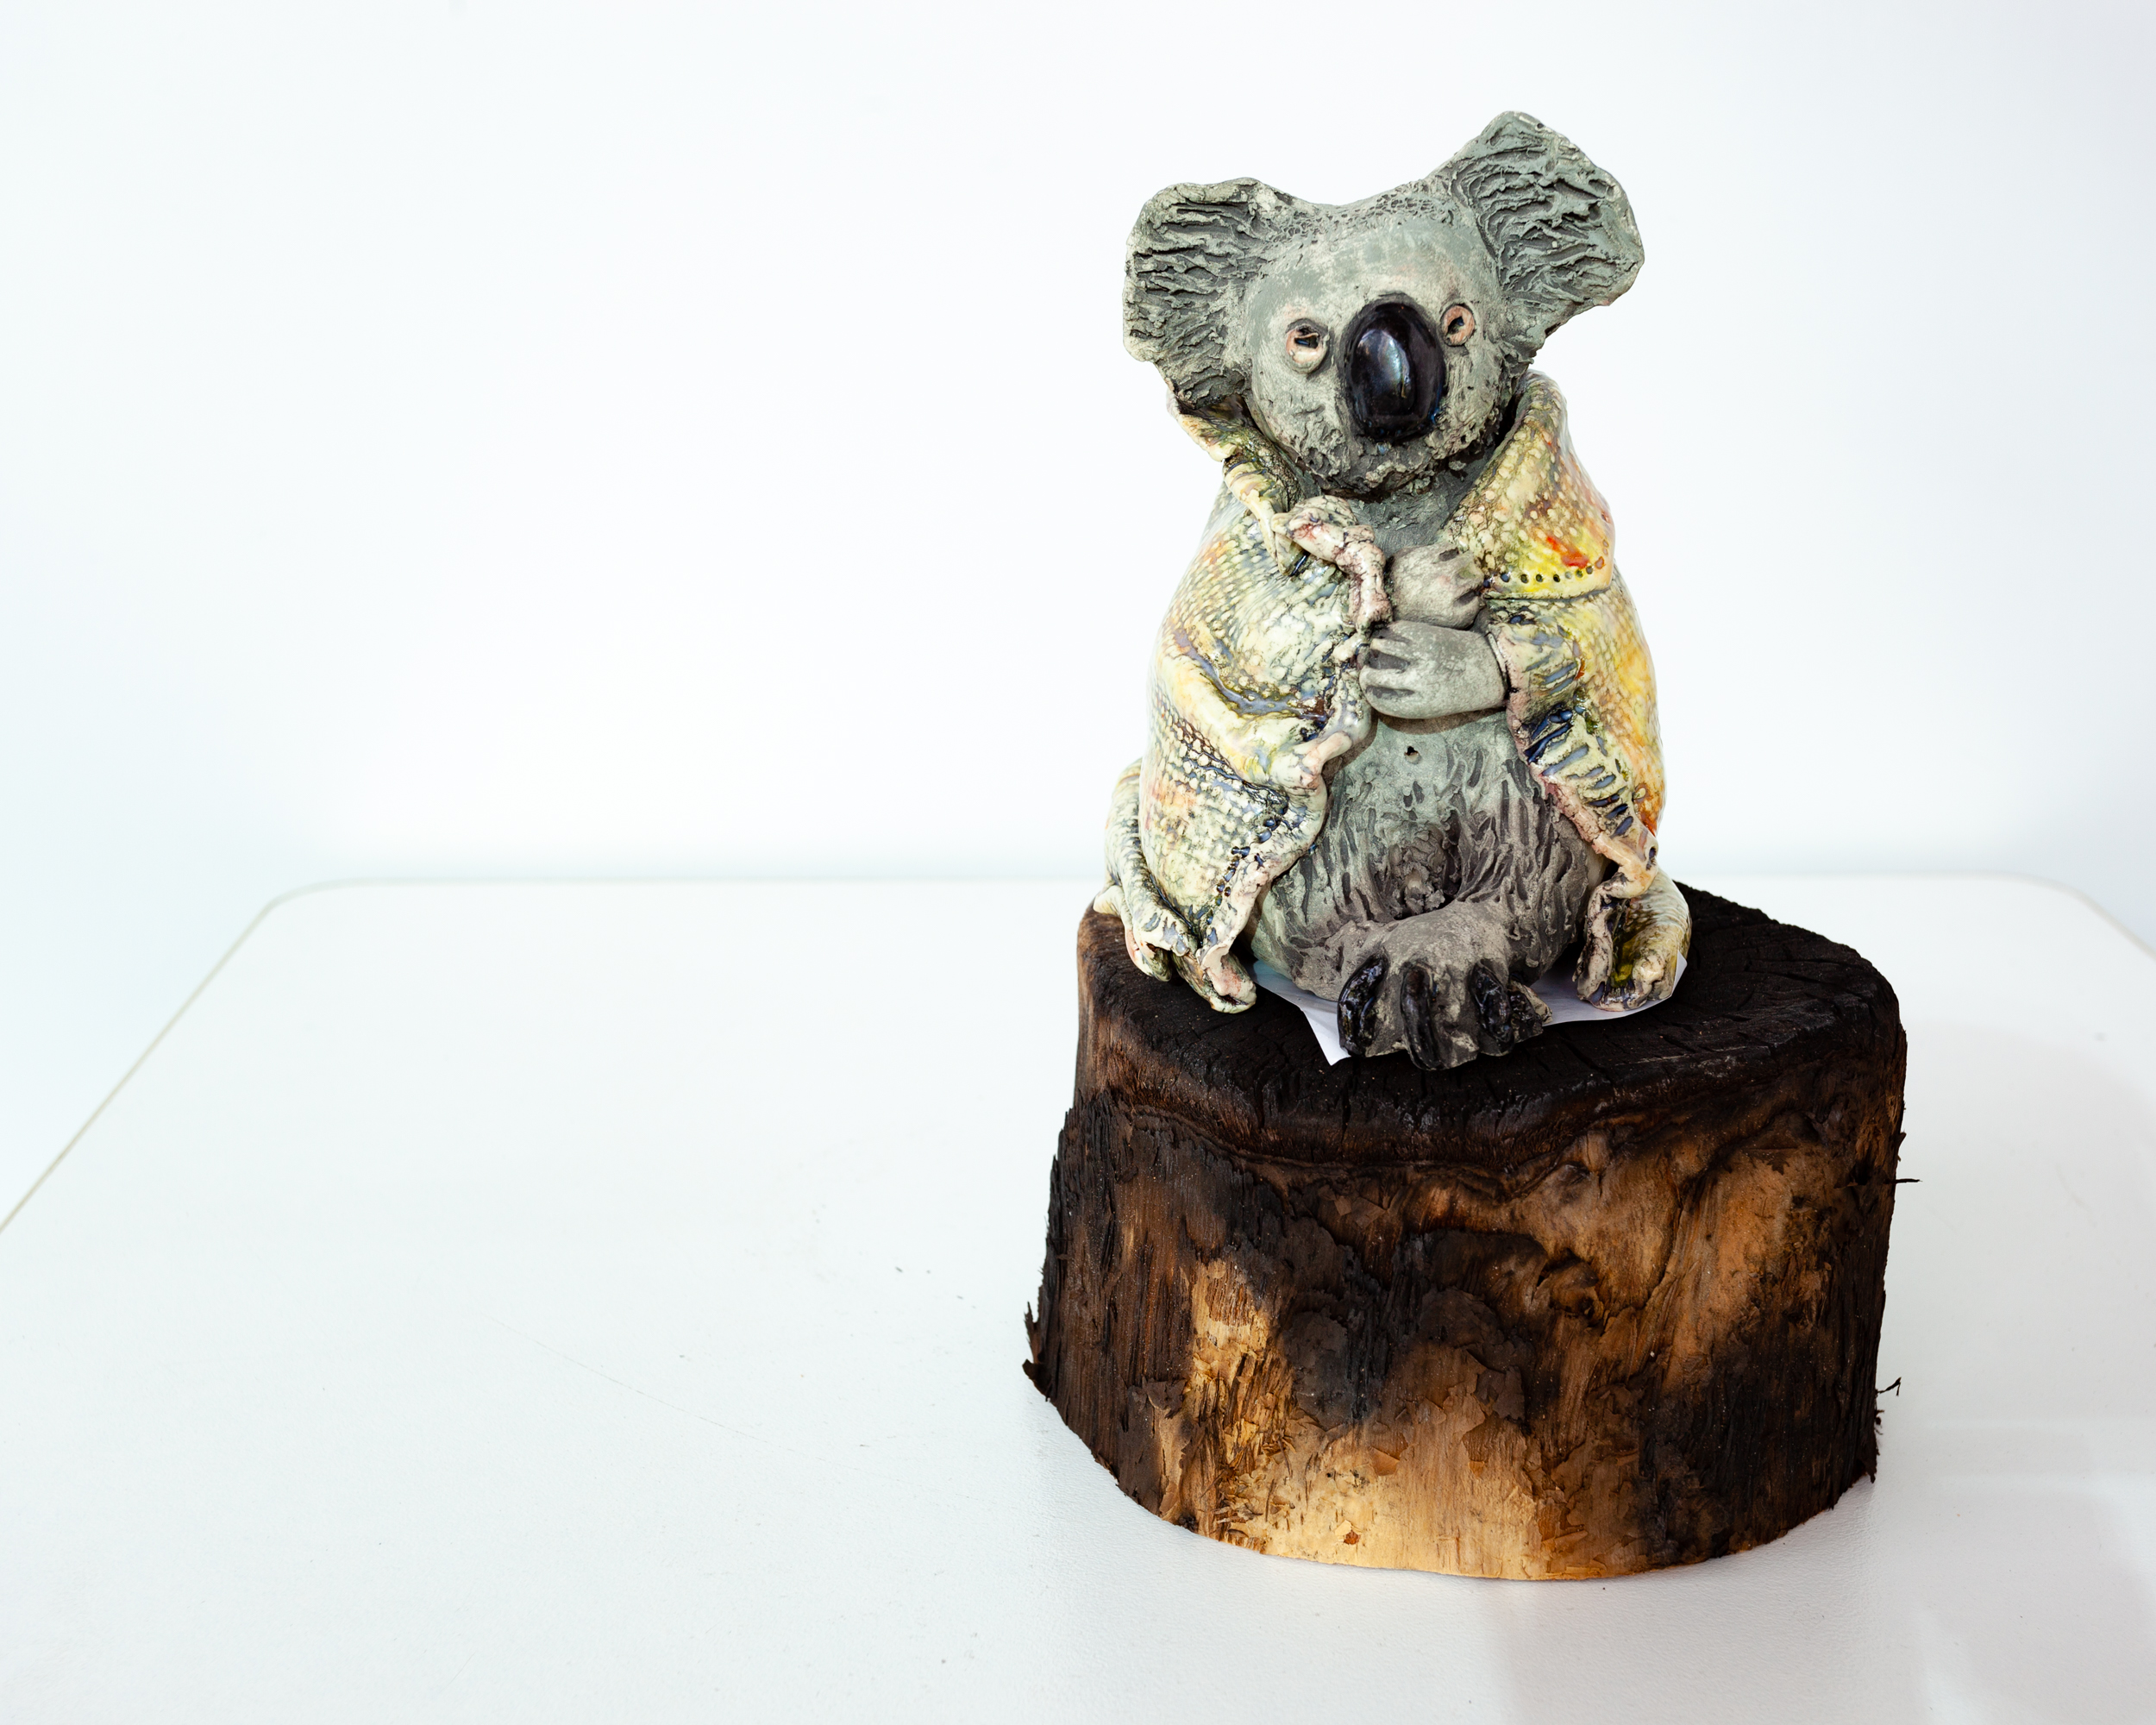 A ceramic koala with a blanket sitting on a charred piece of round wood